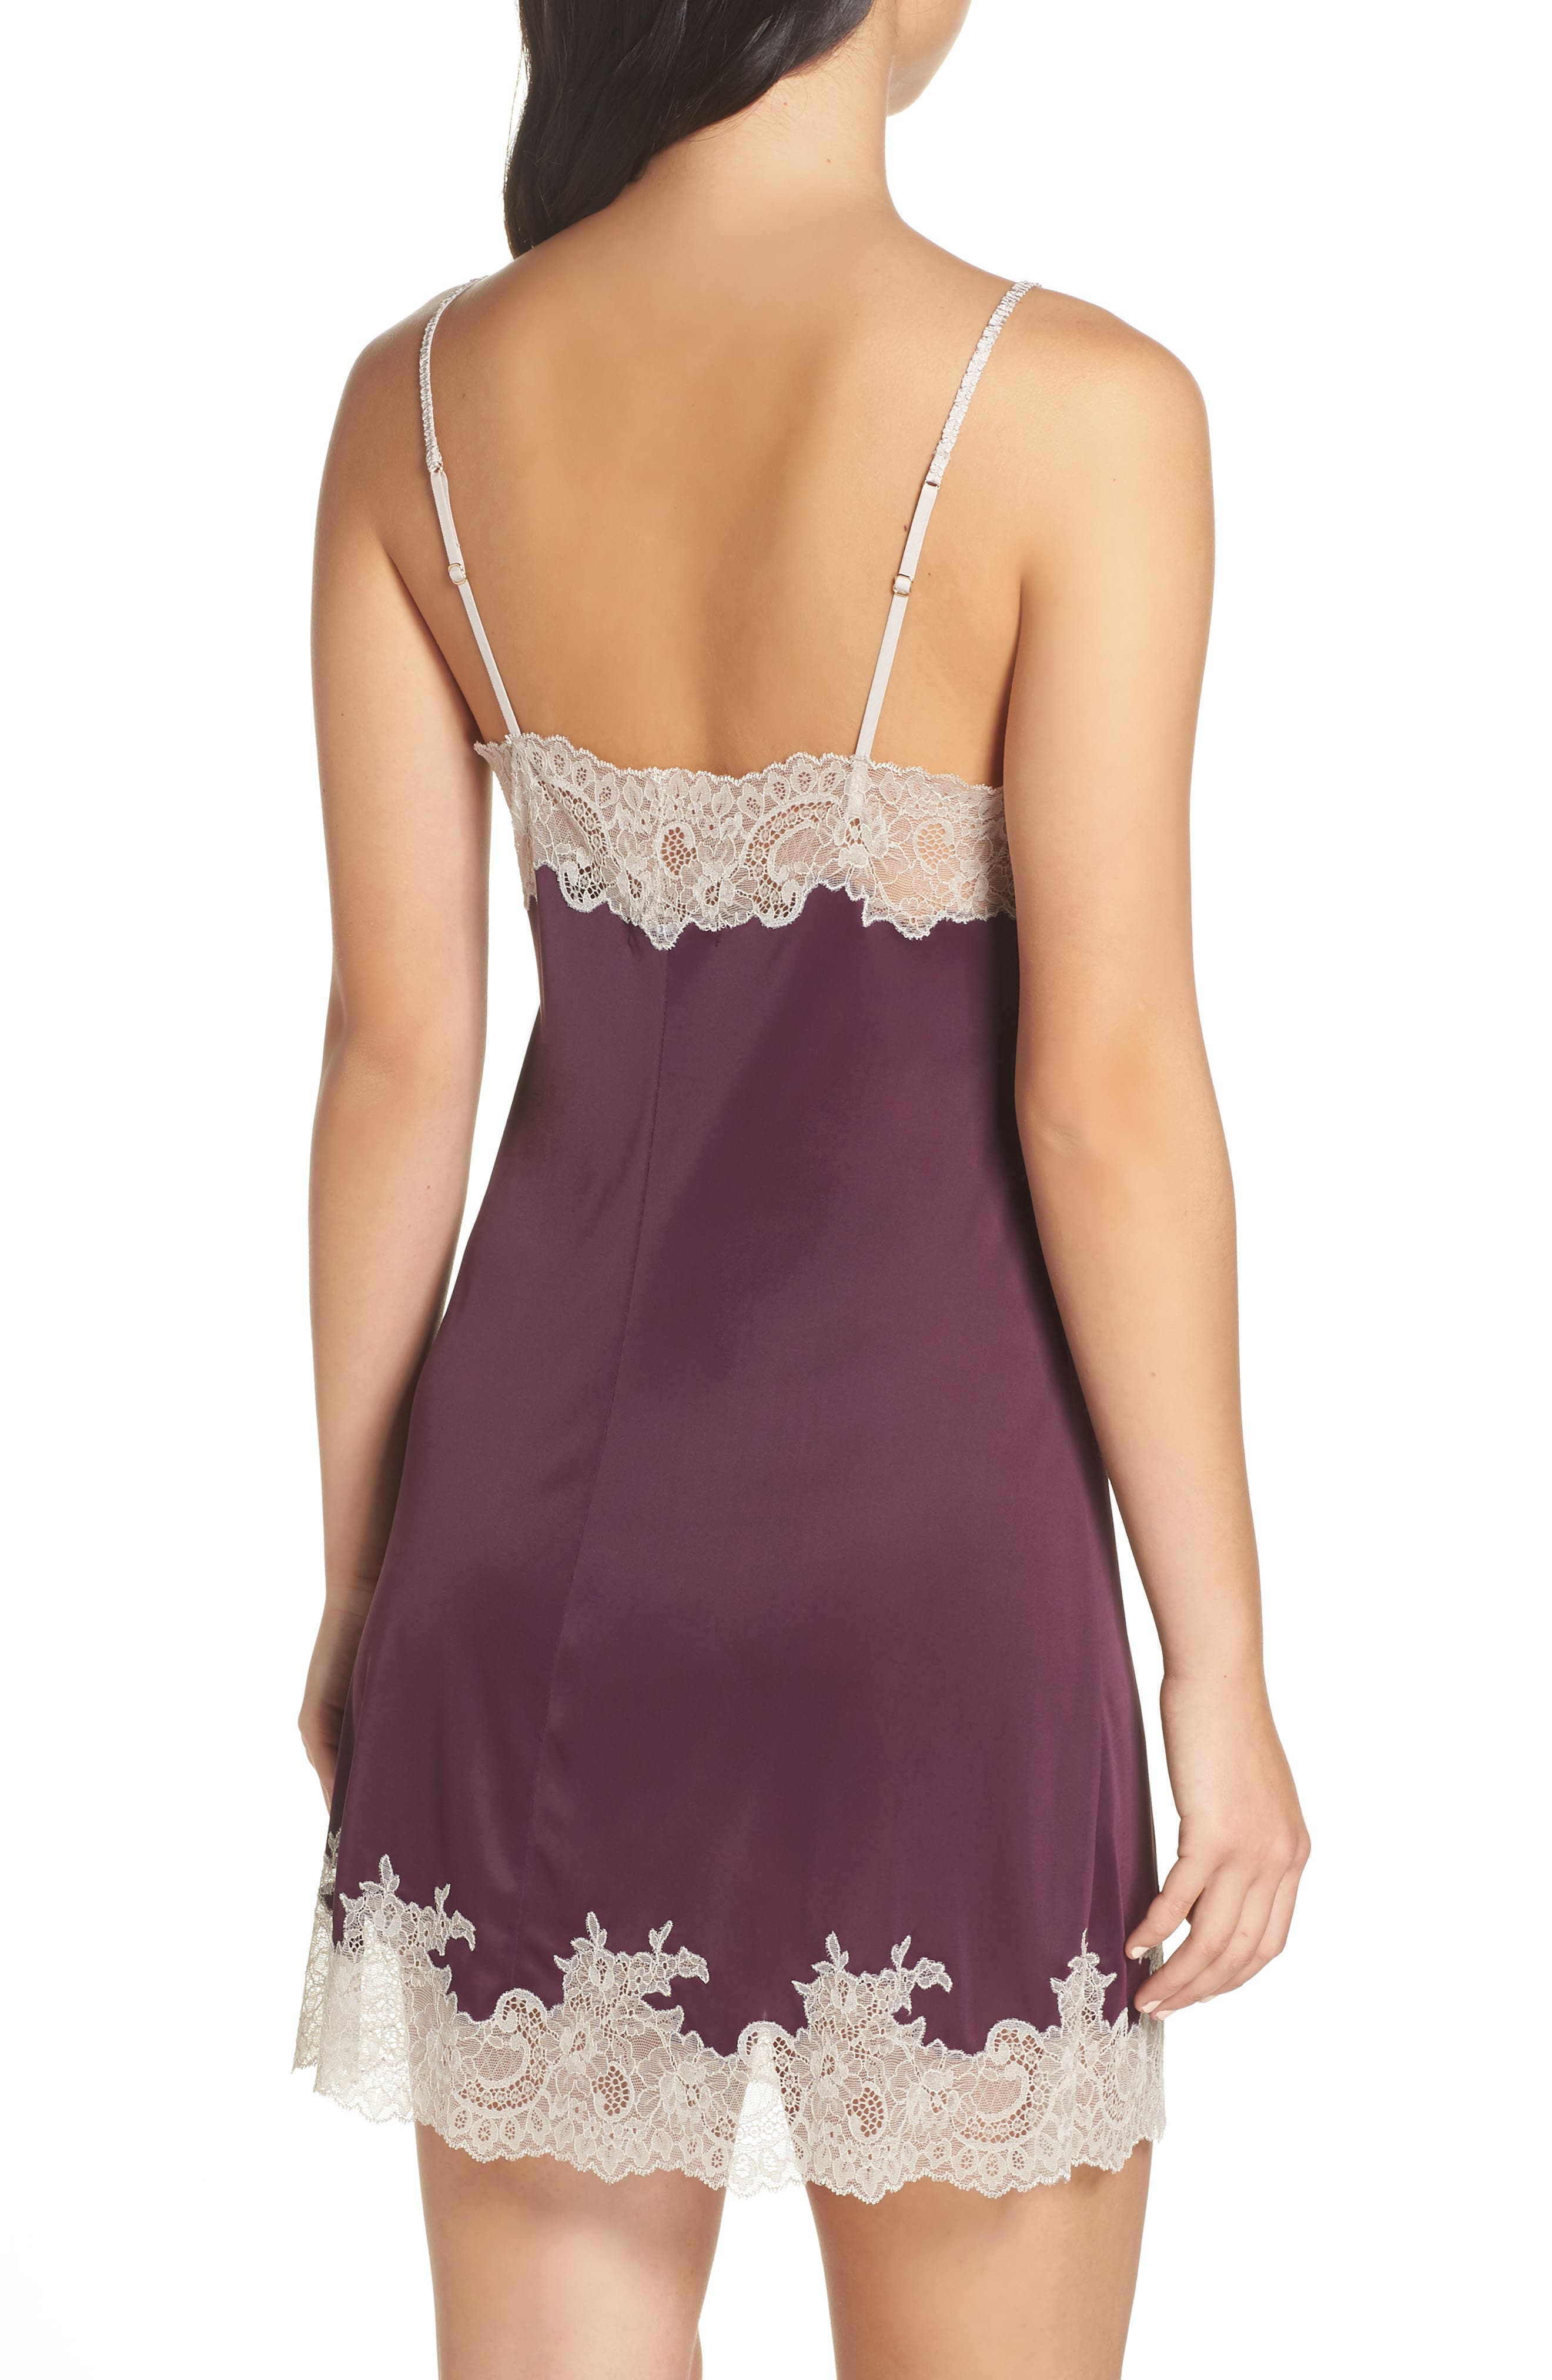 'Enchant' Chemise,                             Alternate thumbnail 2, color,                             PURPLE COCOON